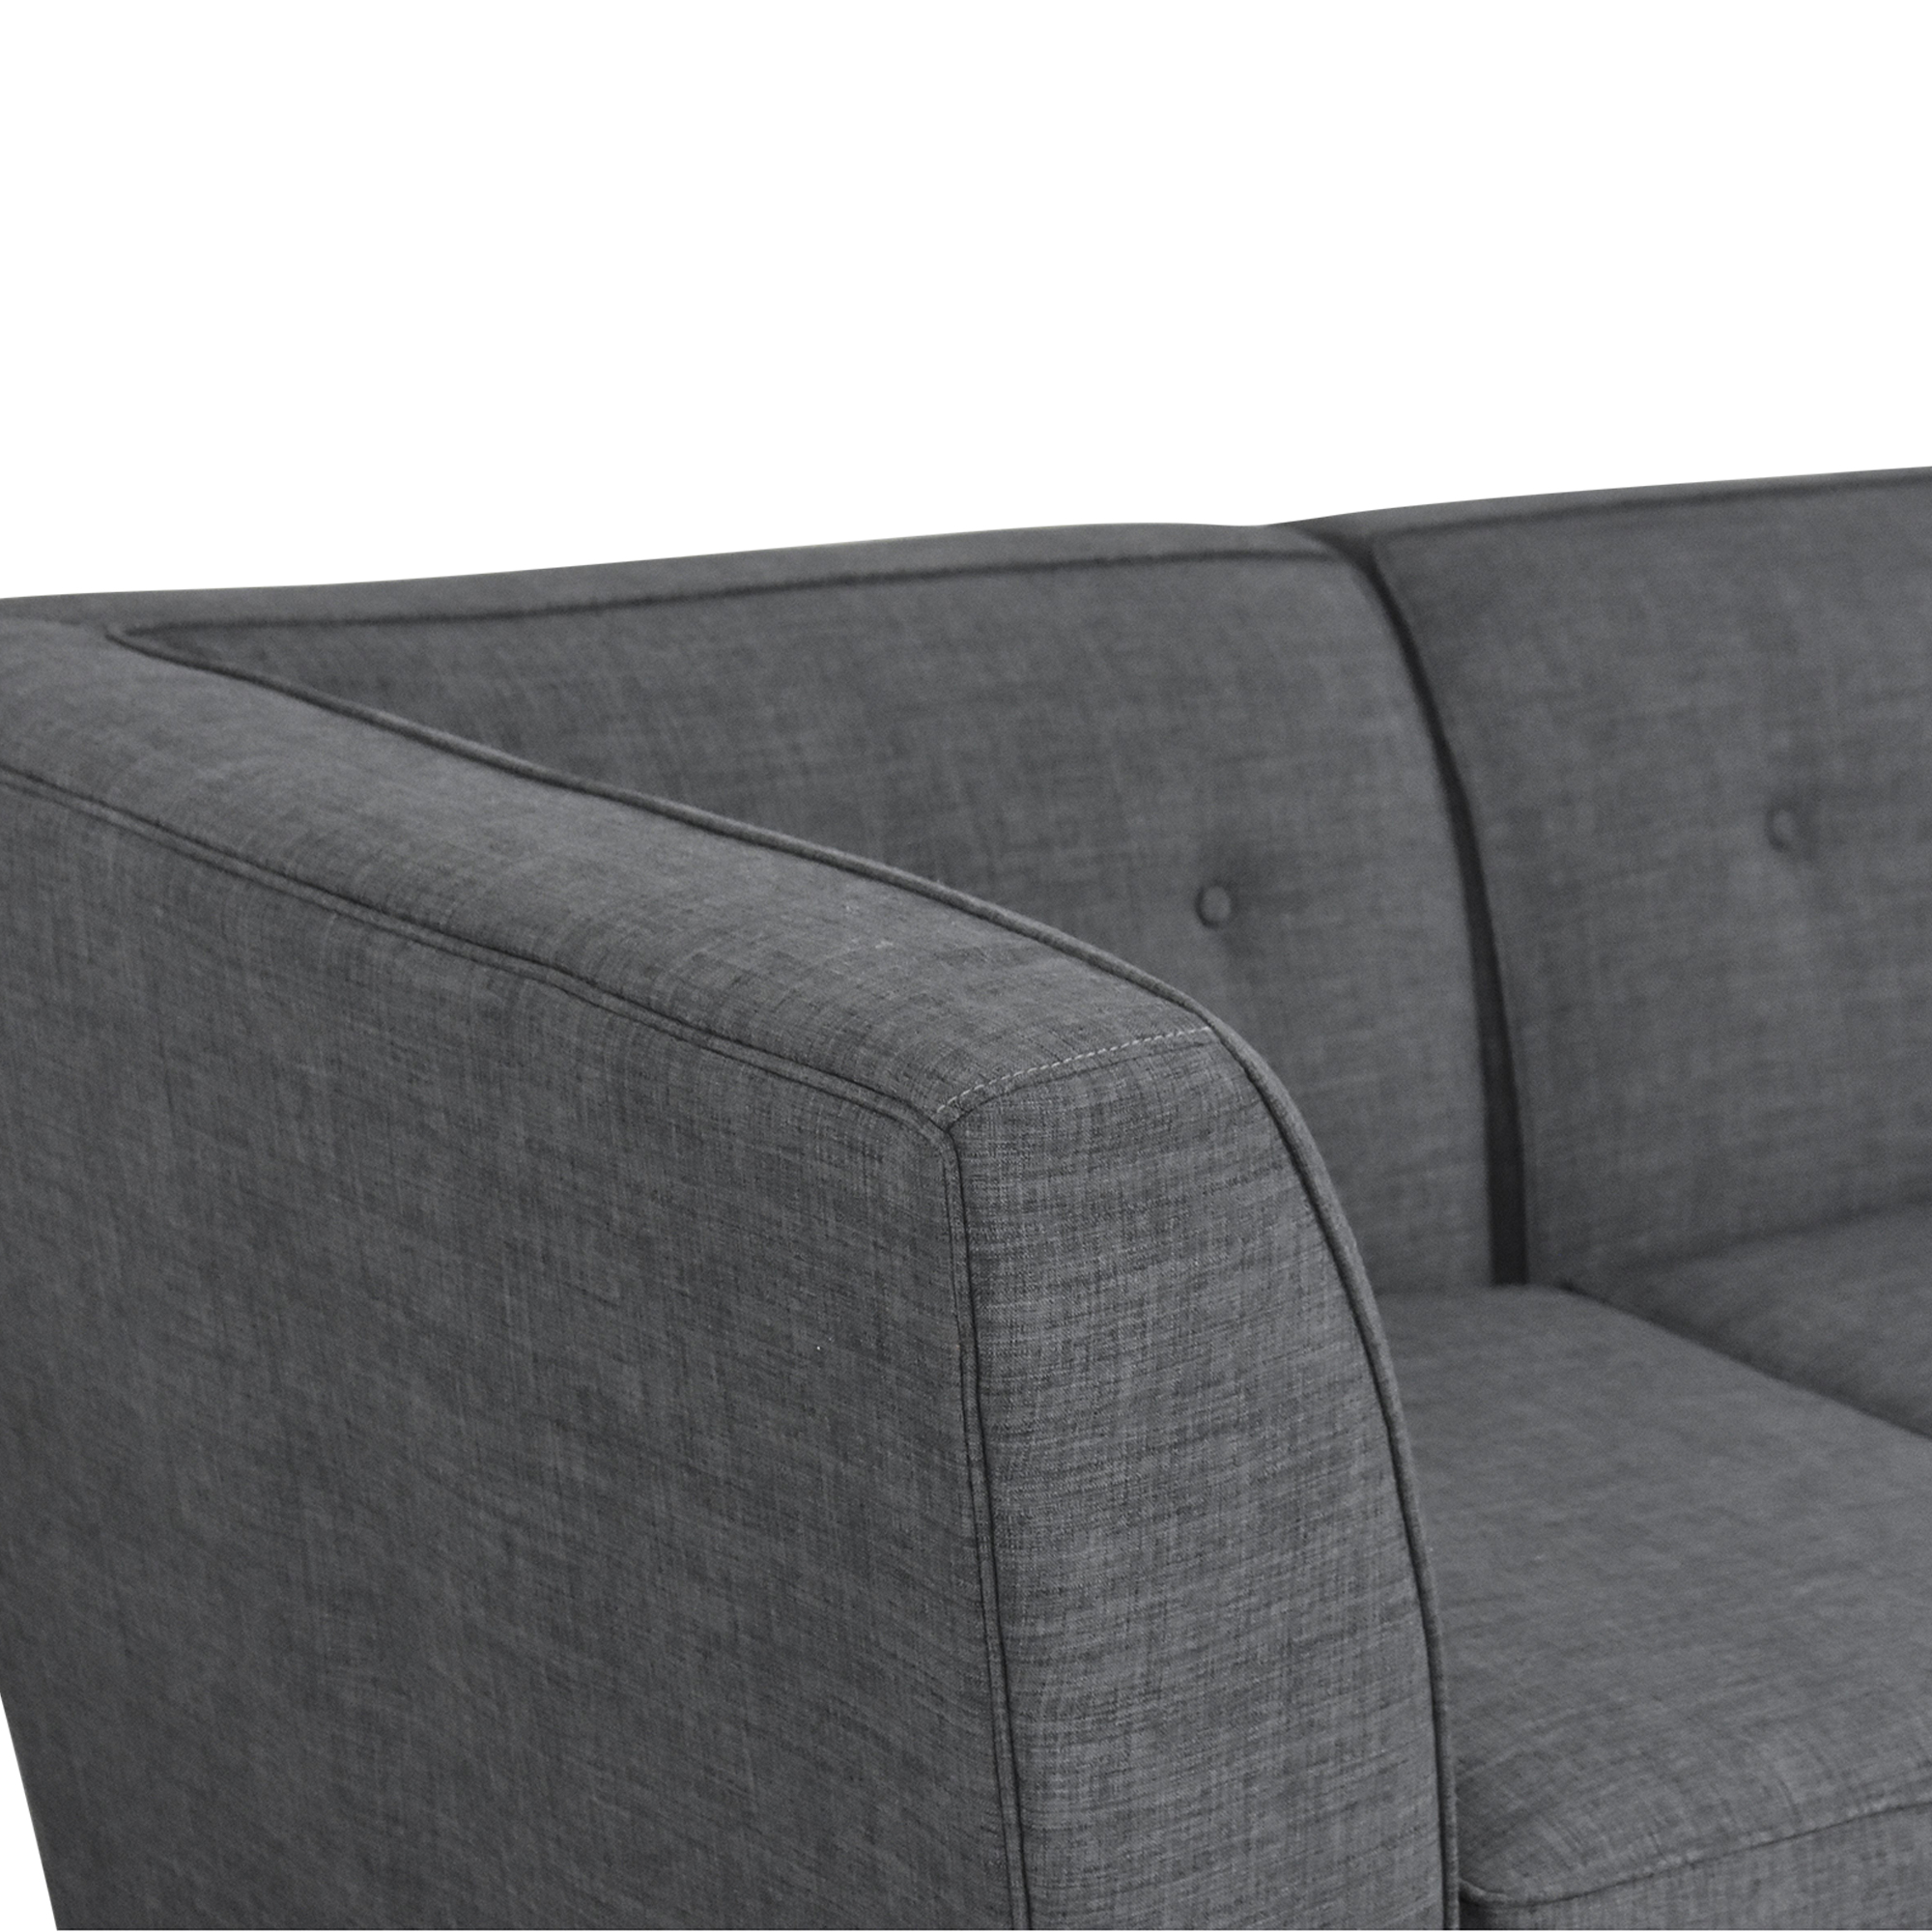 Macy's Macy's Harper Two Piece Sectional Sofa for sale